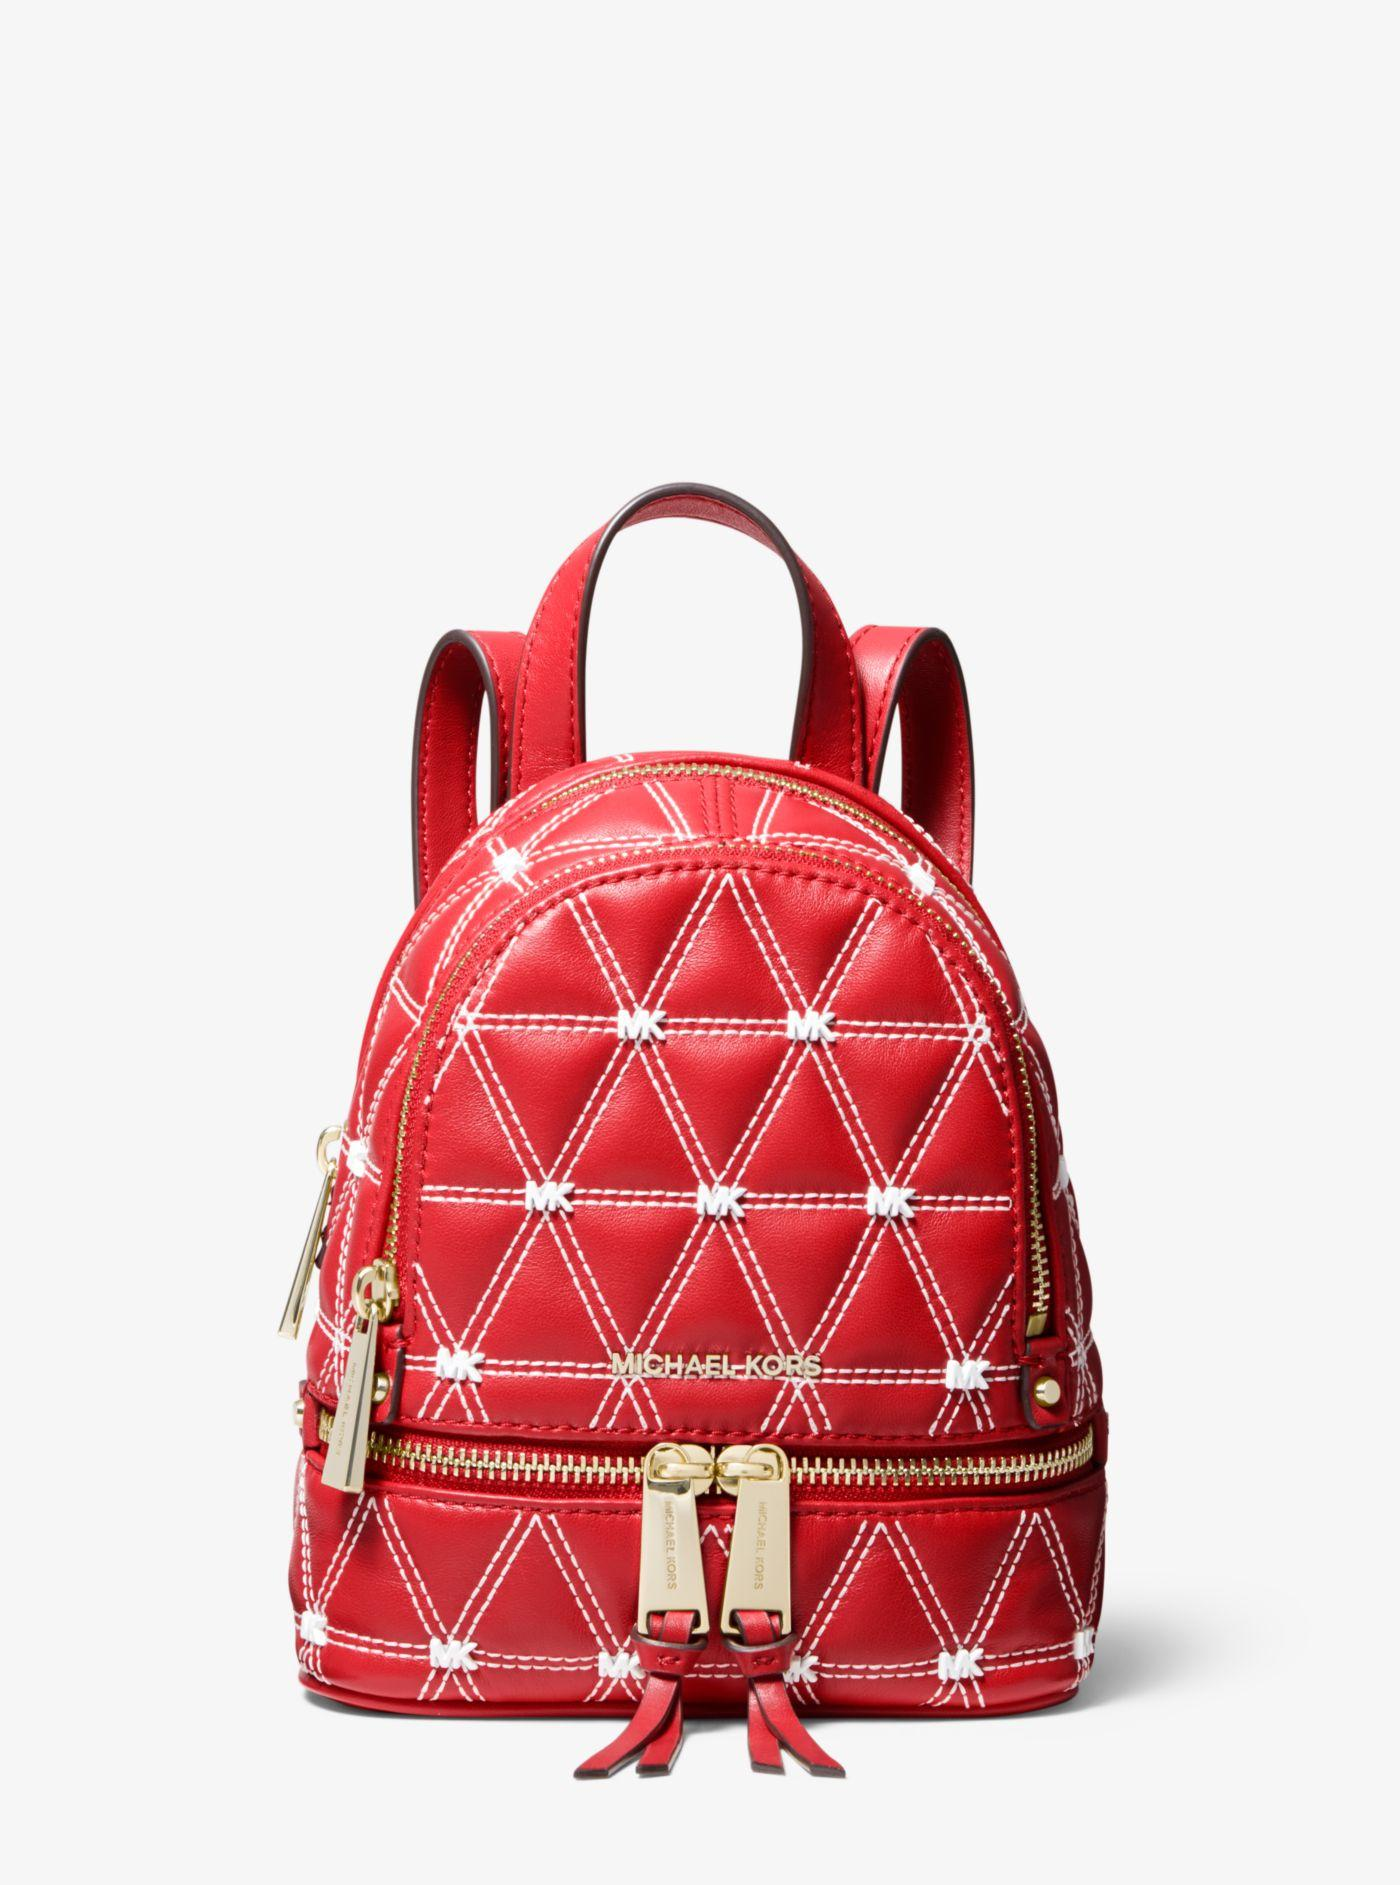 Michael Kors - Red Rhea Mini Quilted Leather Backpack - Lyst. View  fullscreen 708852c633